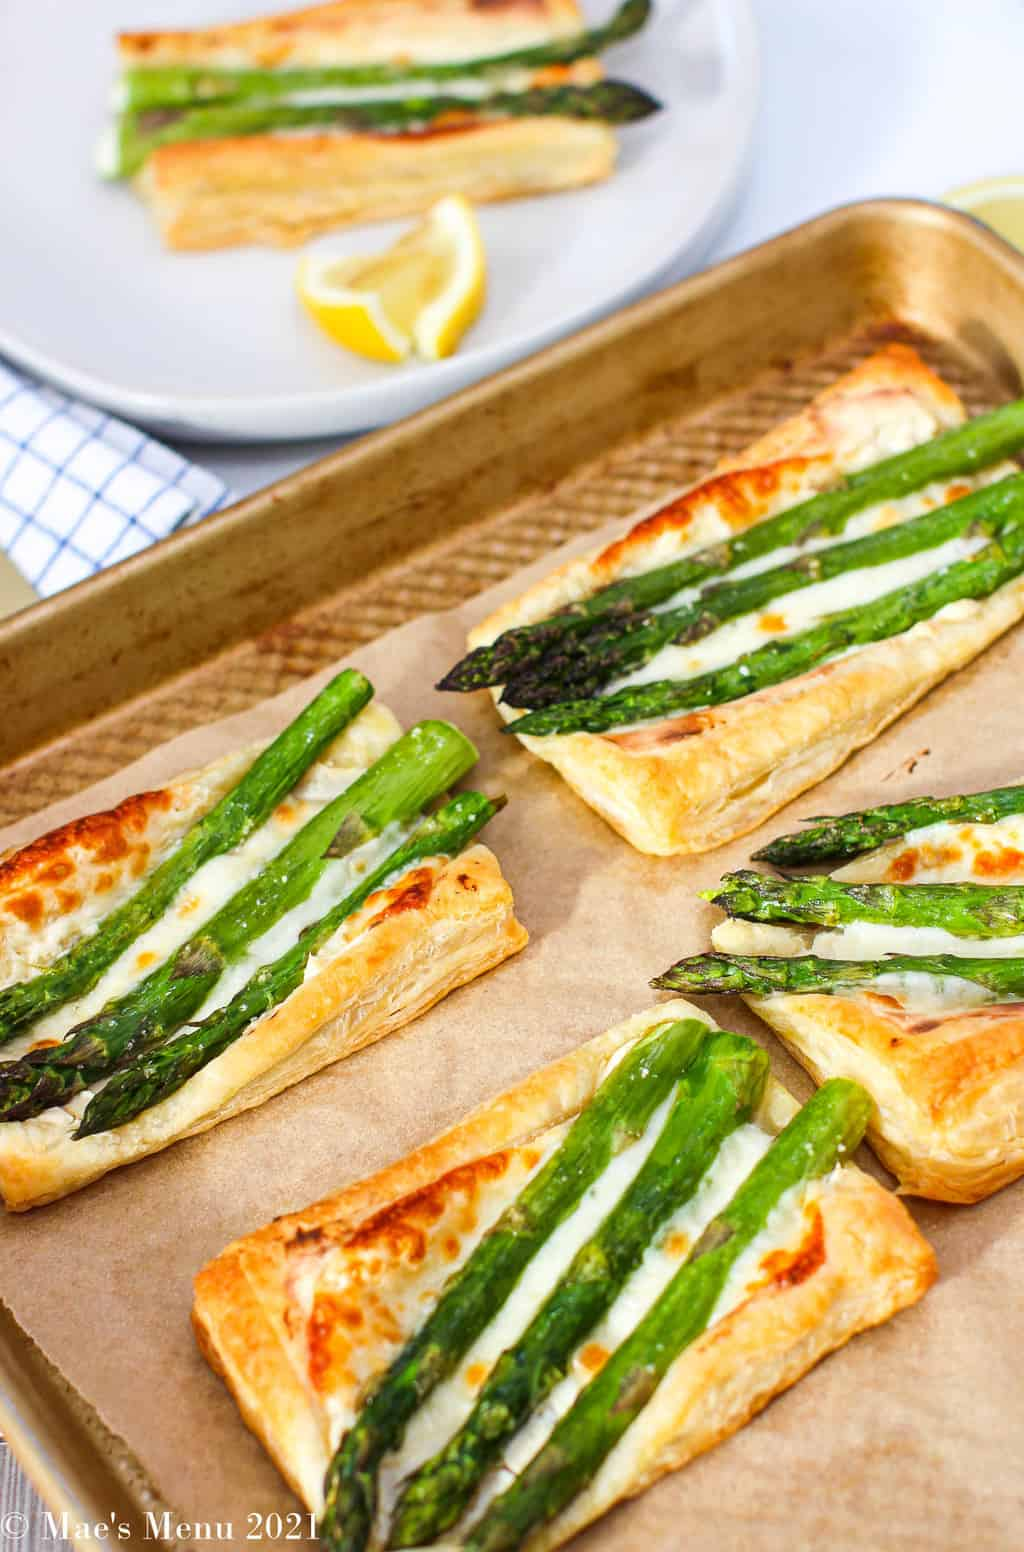 A baking sheet of easy and cheesy asparagus tarts with a white plate with a tart on it in the background